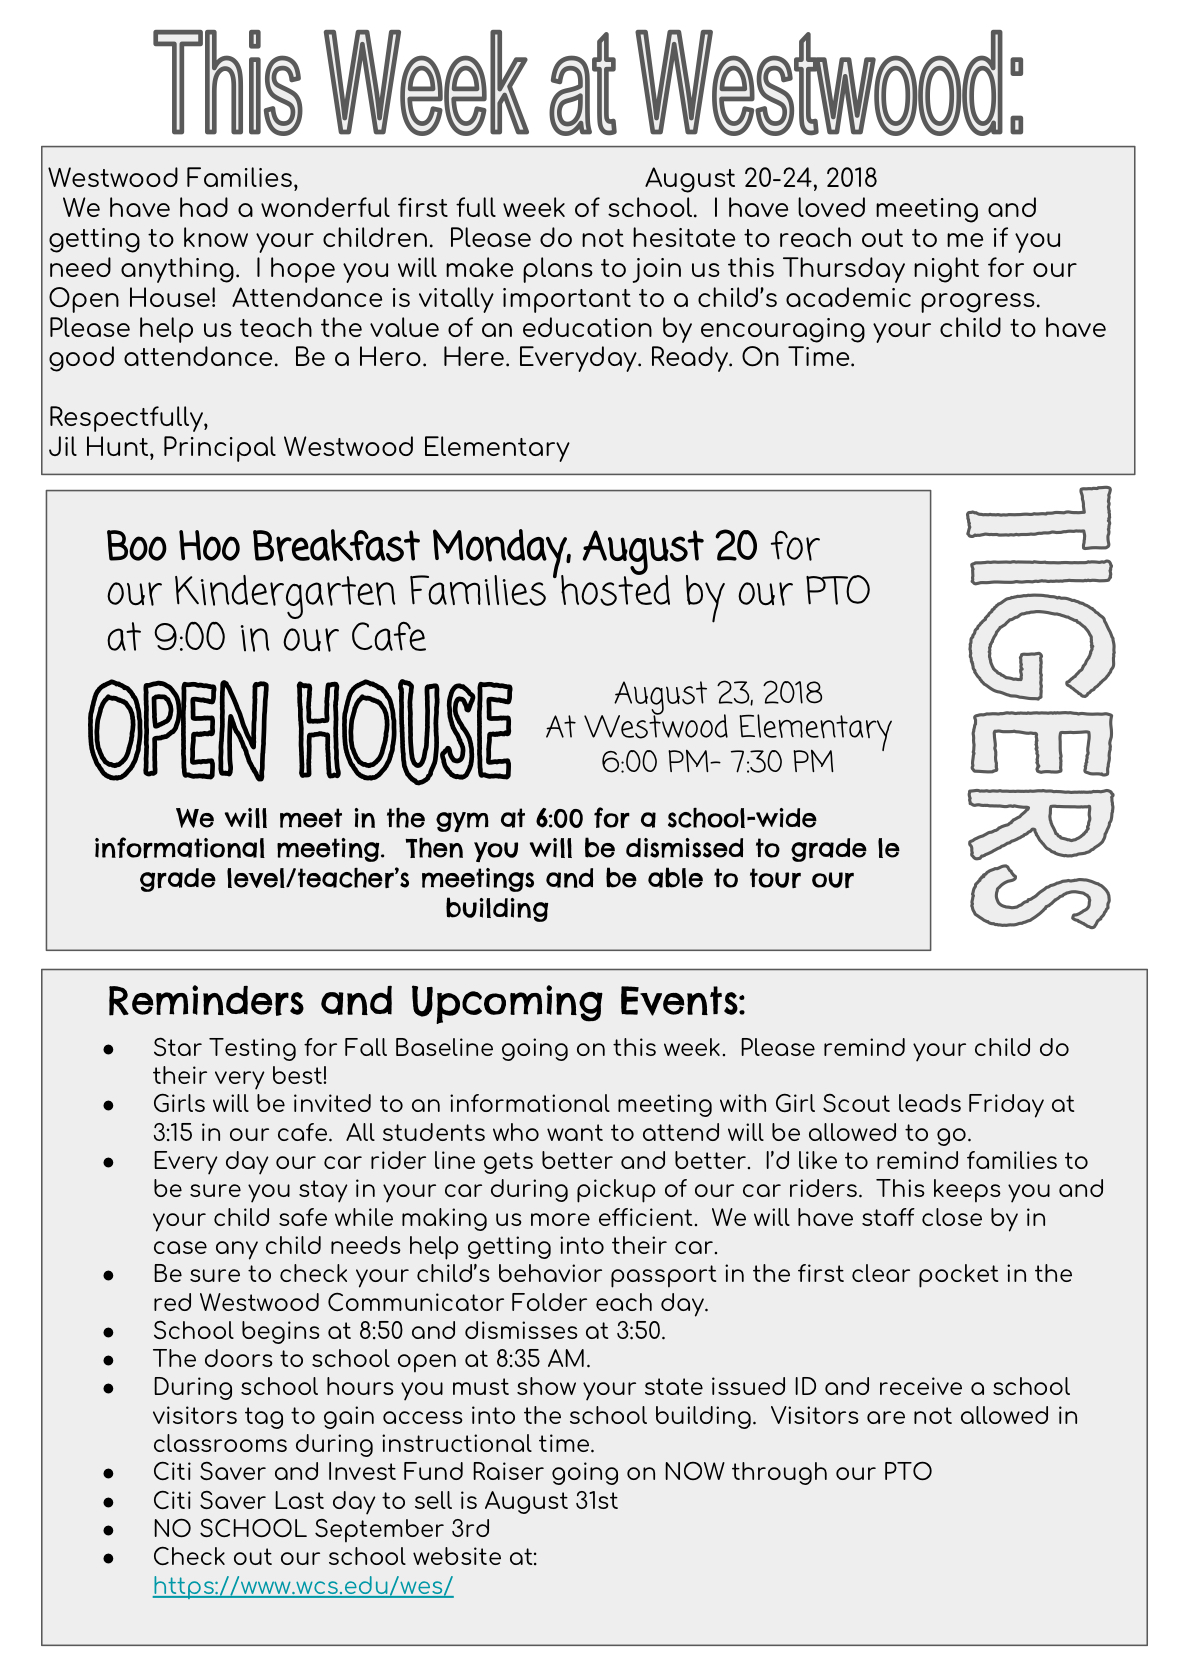 Newsletter from Mrs Hunt August 20